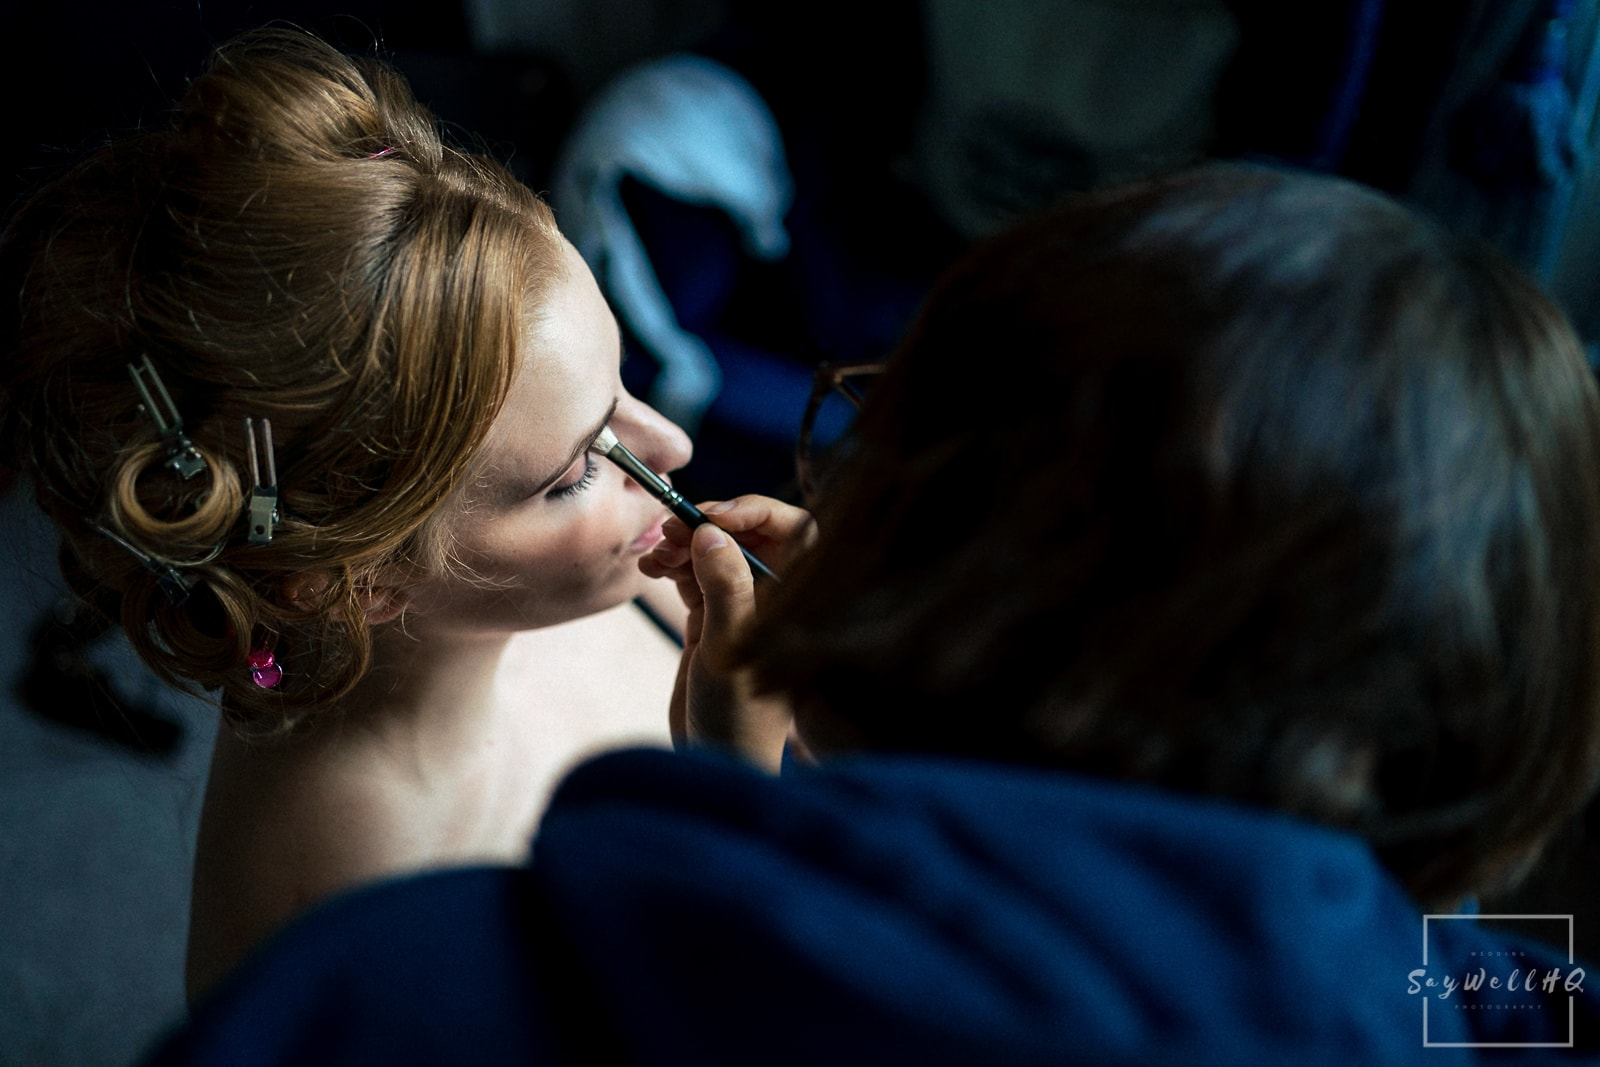 Prestwold Hall Wedding Photography - Bride and Bridesmaids getting ready for the summer outdoor wedding at Prestwold Hall